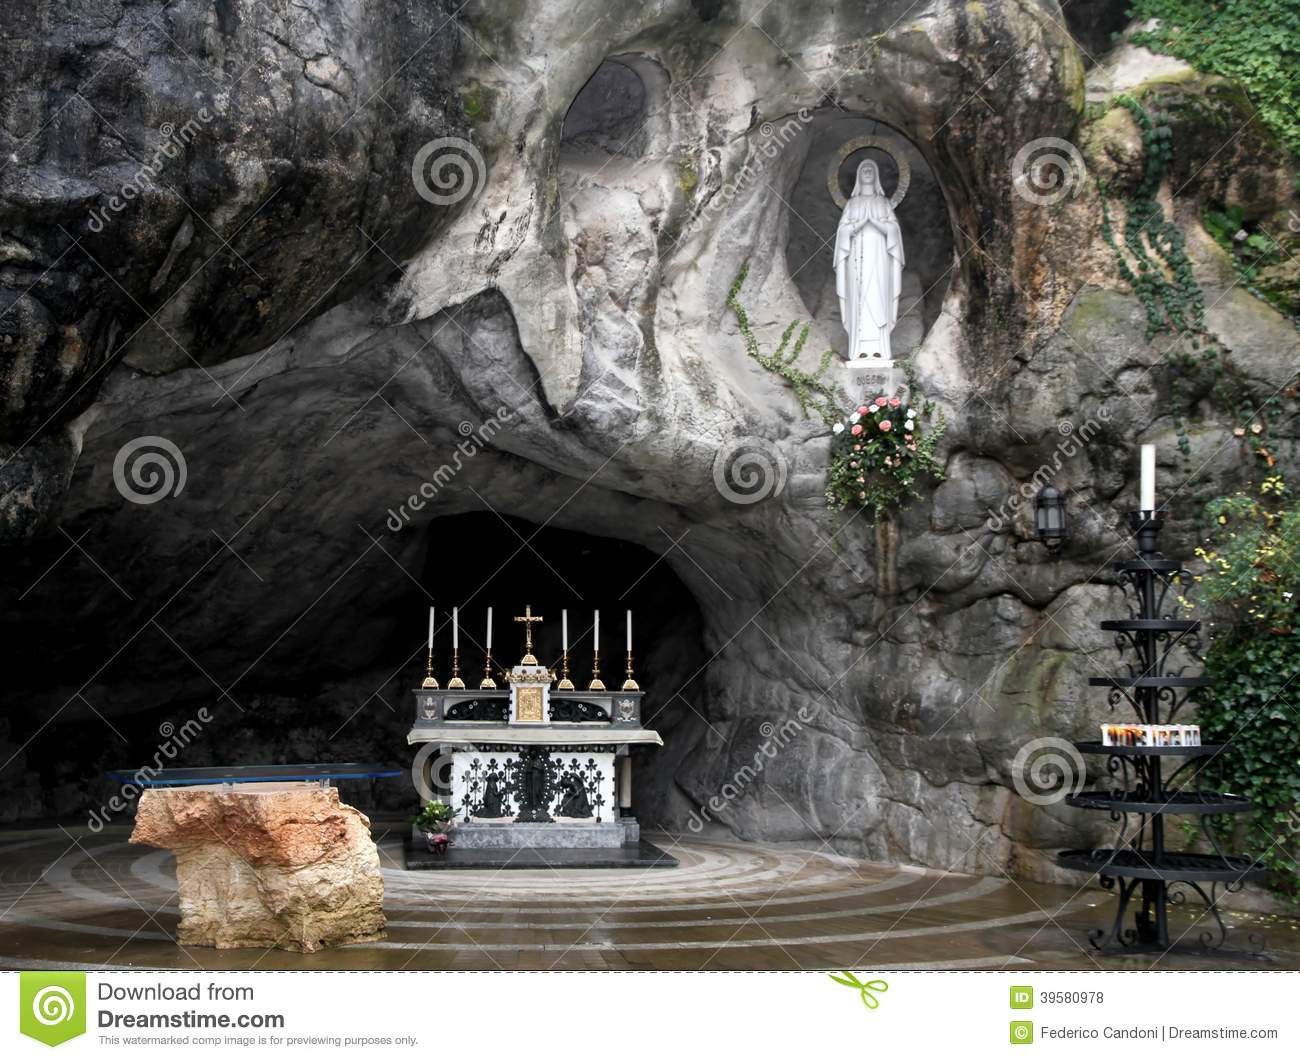 Statue Of The Virgin Mary In The Grotto Of Lourdes Attracts Many.